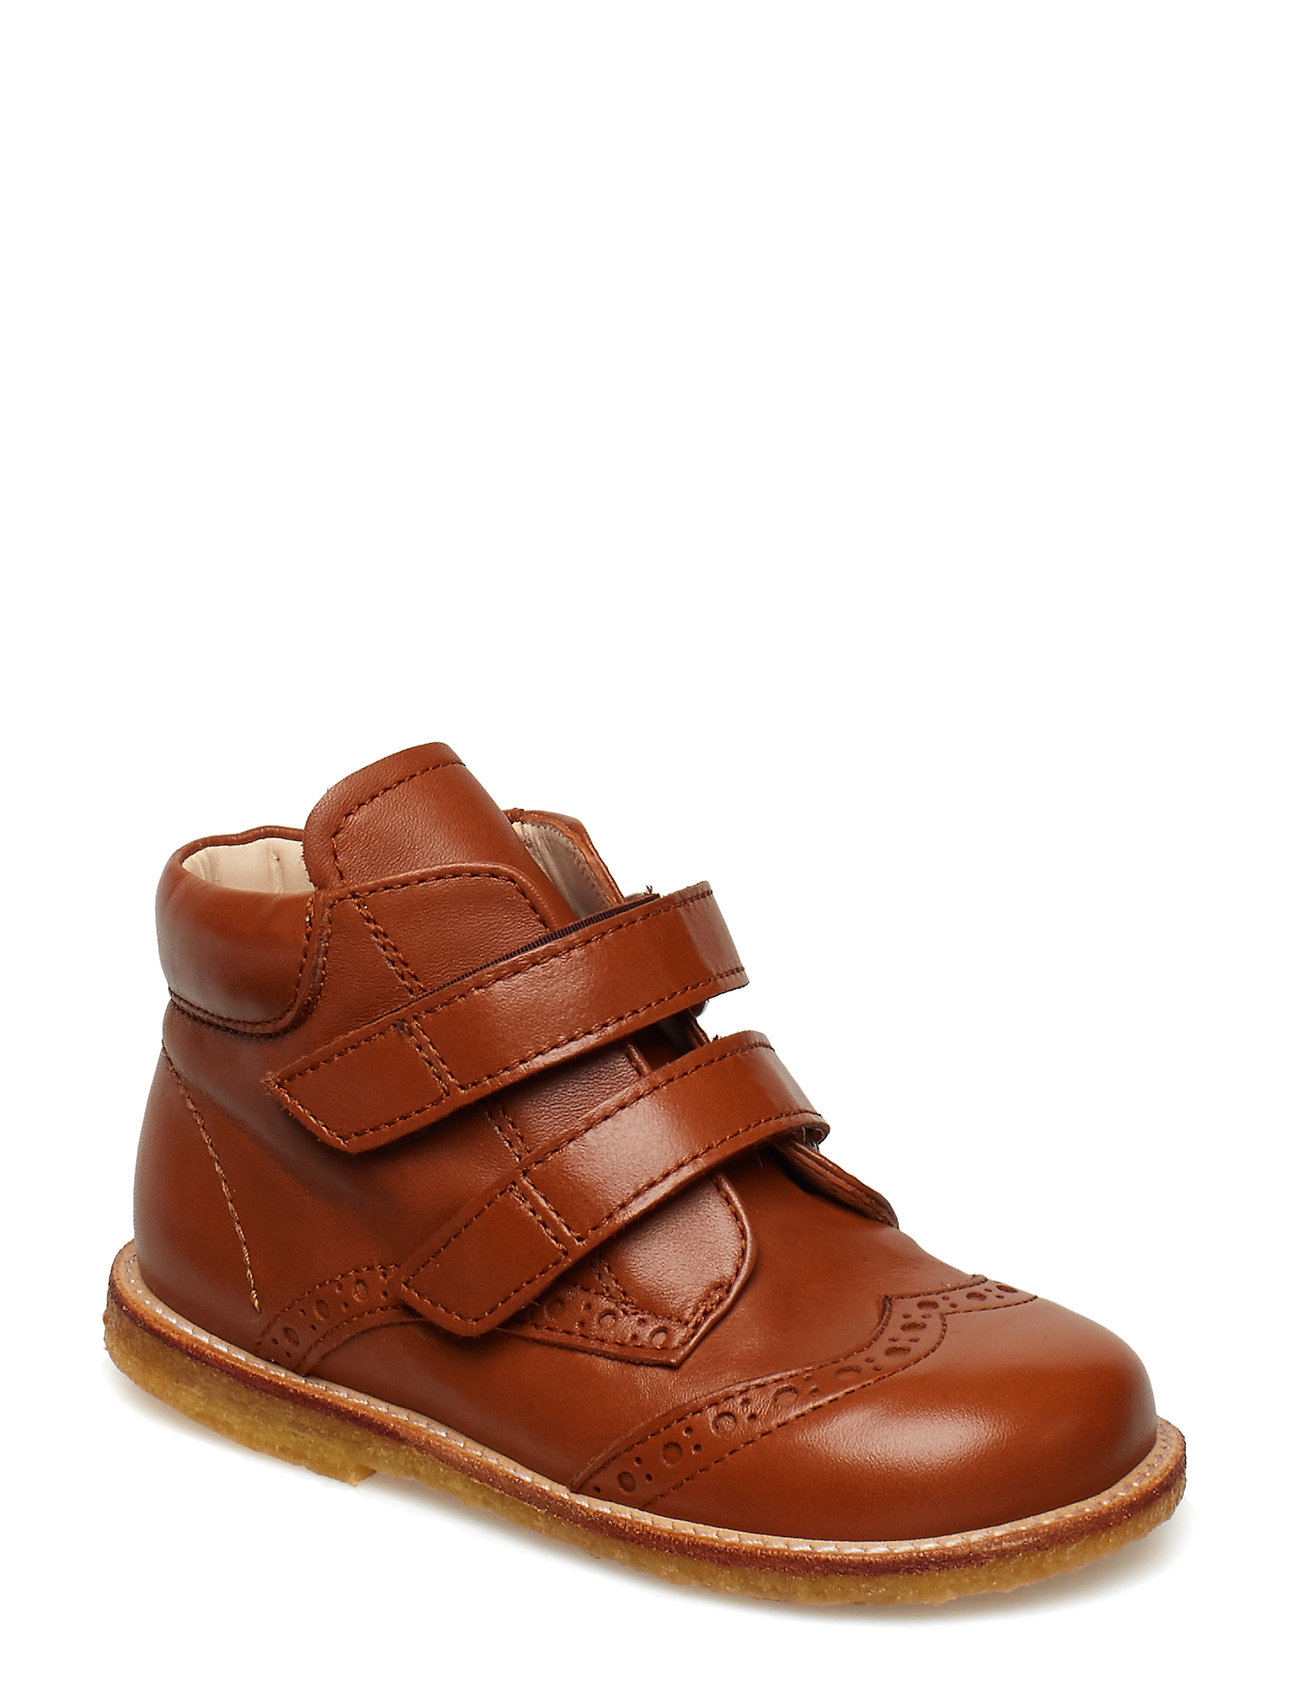 ANGULUS Shoes - flat - with velcro - 1431 COGNAC